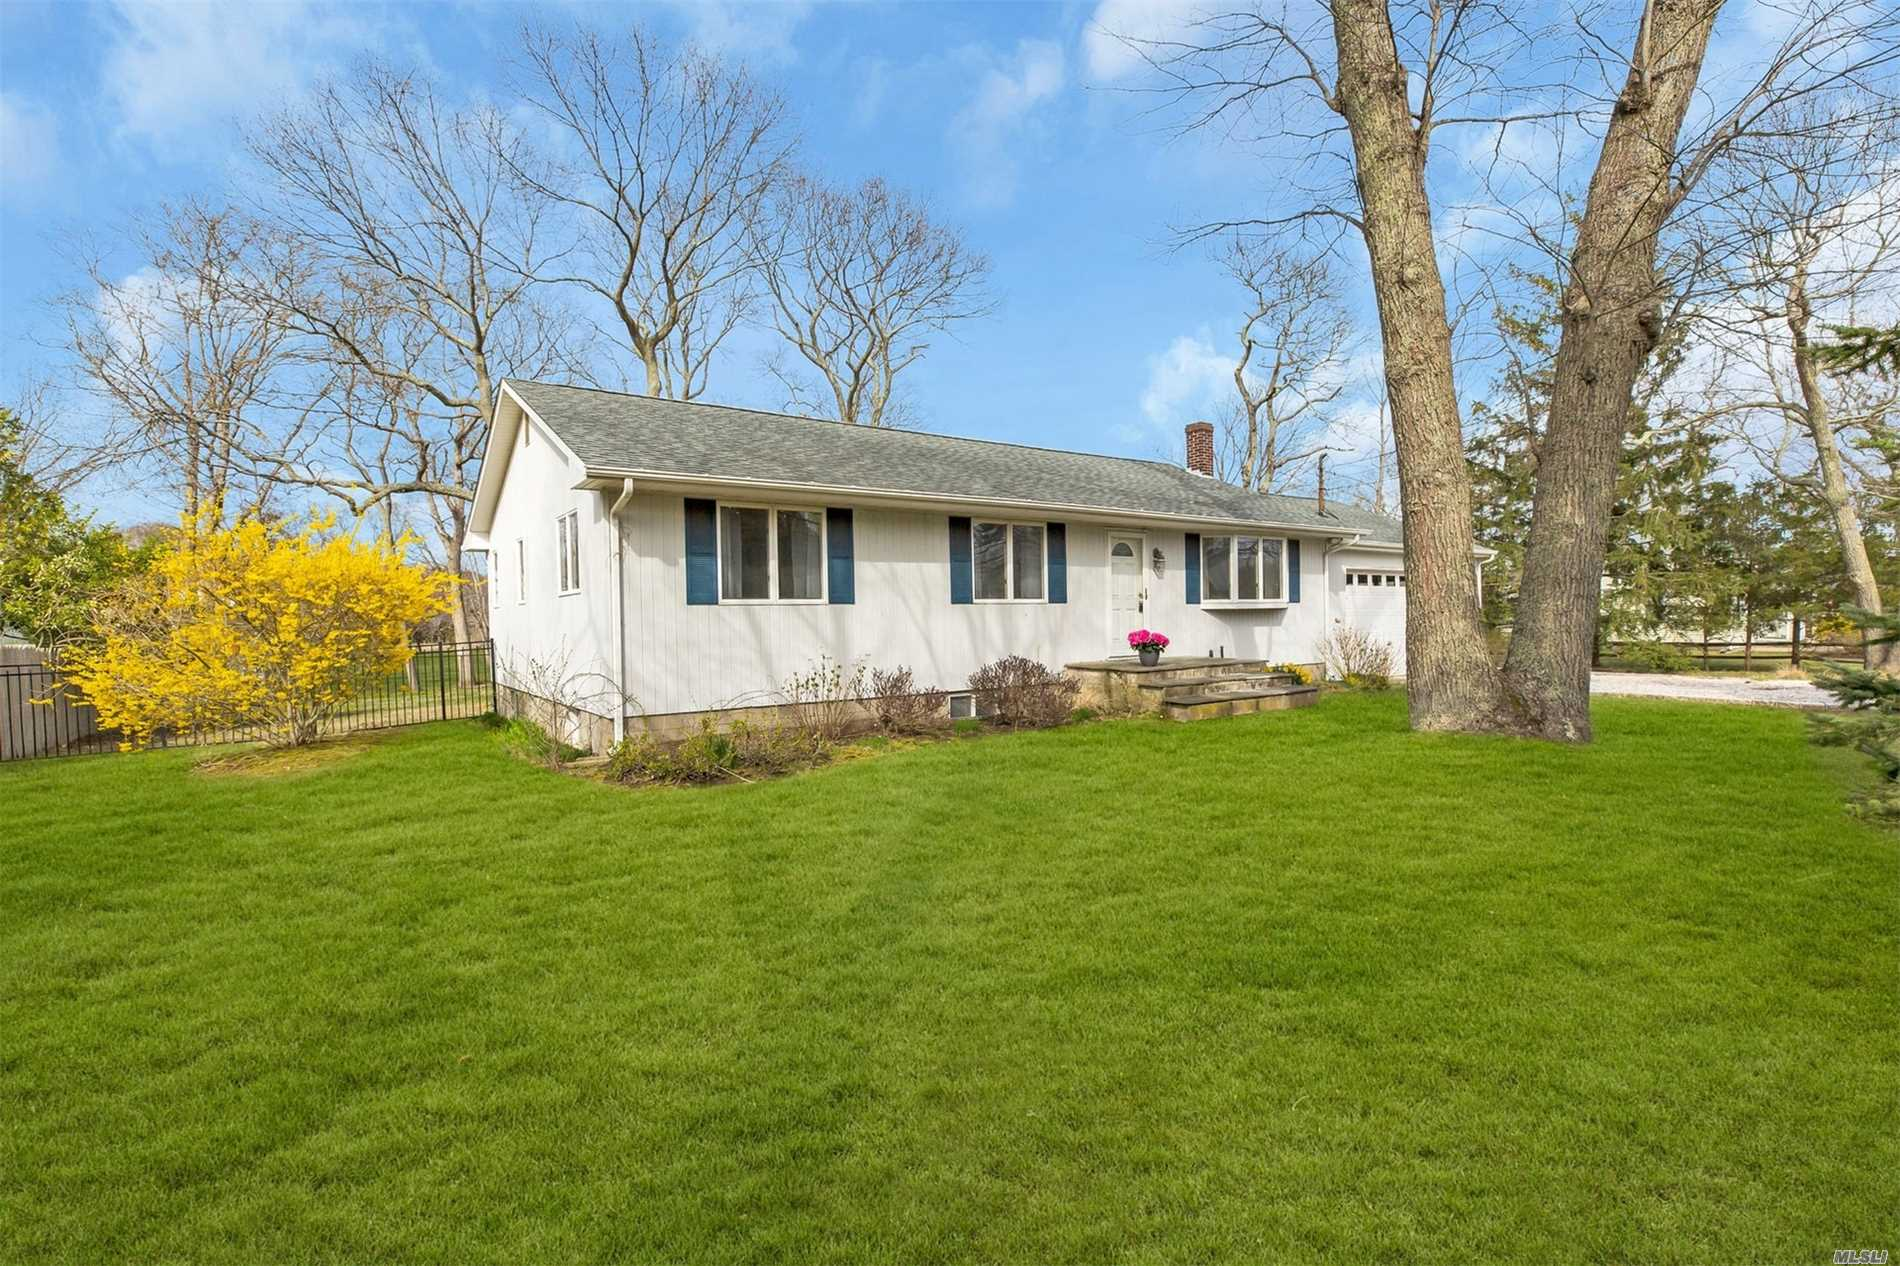 Imagine yourself enjoying all the North Fork has to offer this summer in your own getaway! Sunny 3 bedroom, 2 bath ranch on .34 acre in Goose Neck Estates not only has a deeded beach and community park a short distance away, but a deeded dock also! Hardwood floors throughout, oil/hw heat, full basement and 2 car garage.